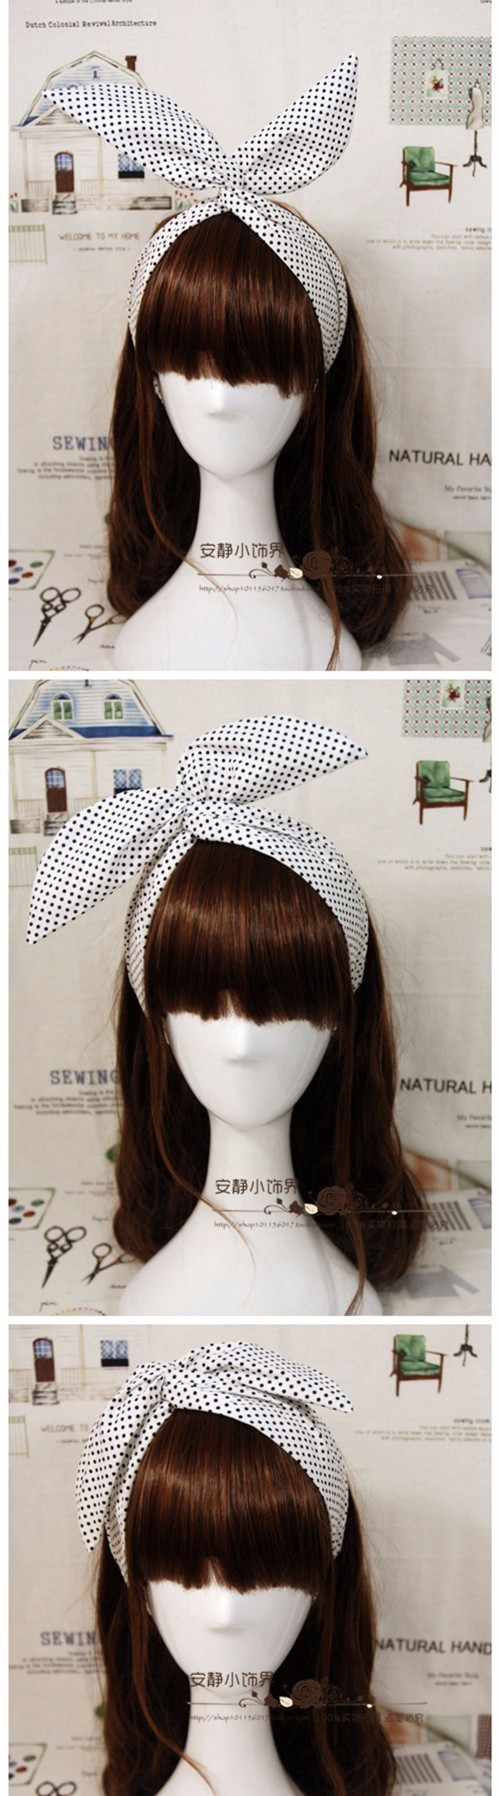 1950s women vintage rockabilly pinup polka dot print headband hairband hair scarf wrap bands accessories bandana bandeau bow